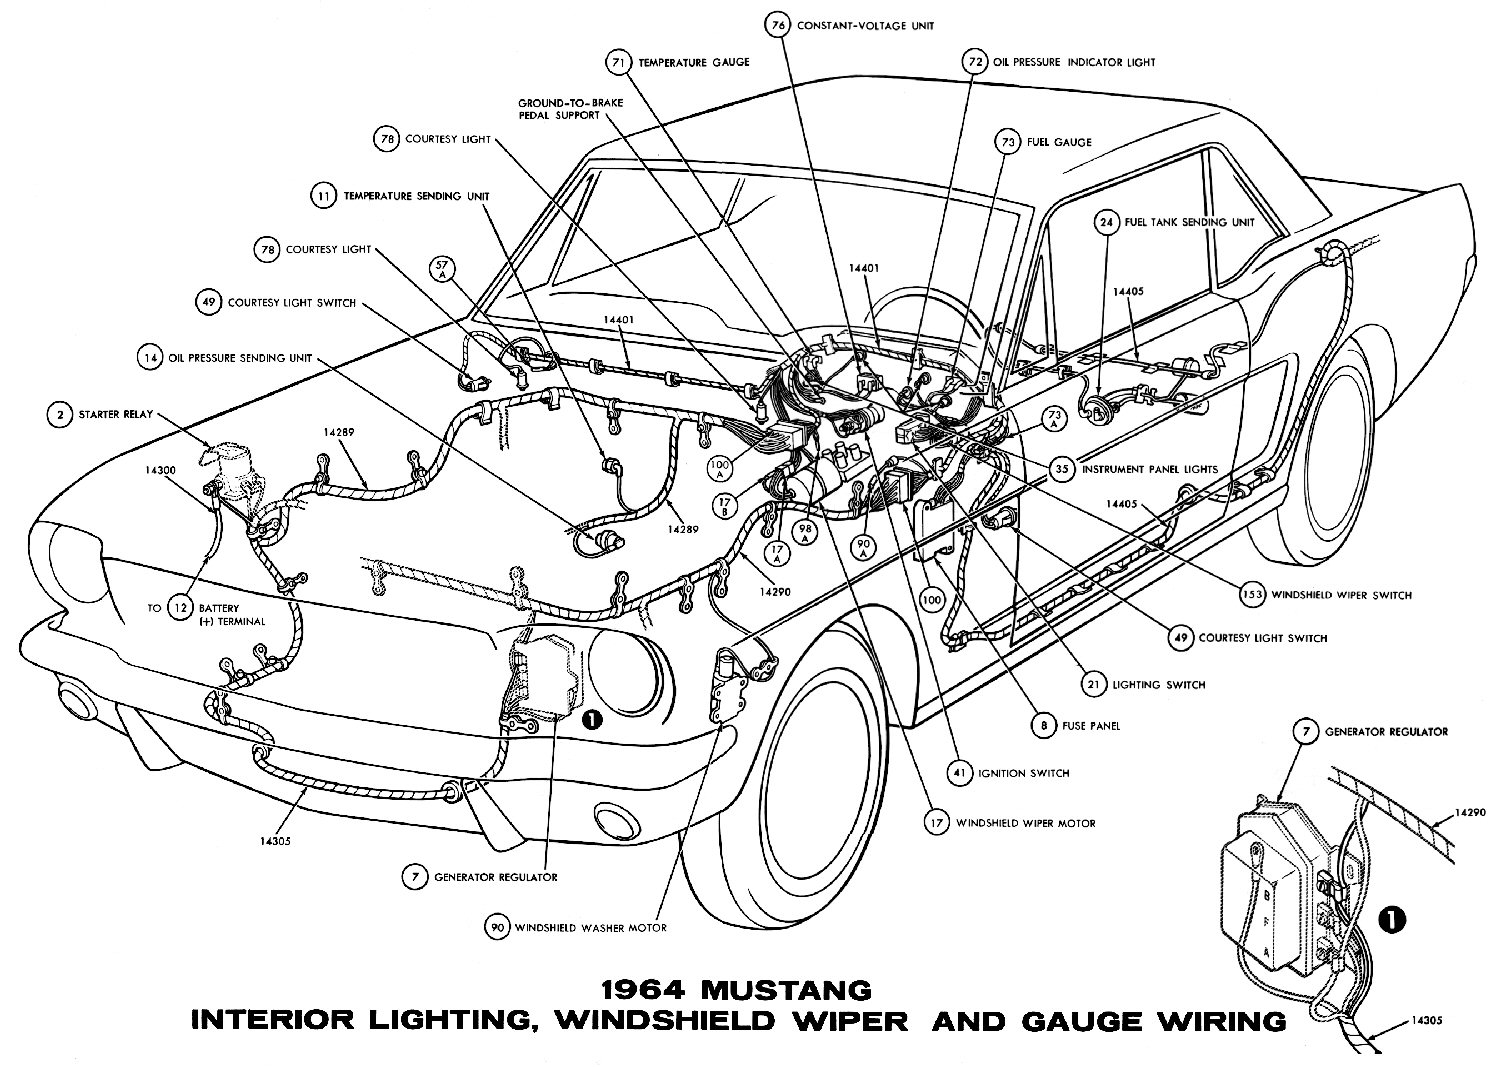 hight resolution of auto parts drawing at getdrawings com free for personal use auto wiring diagram auto parts